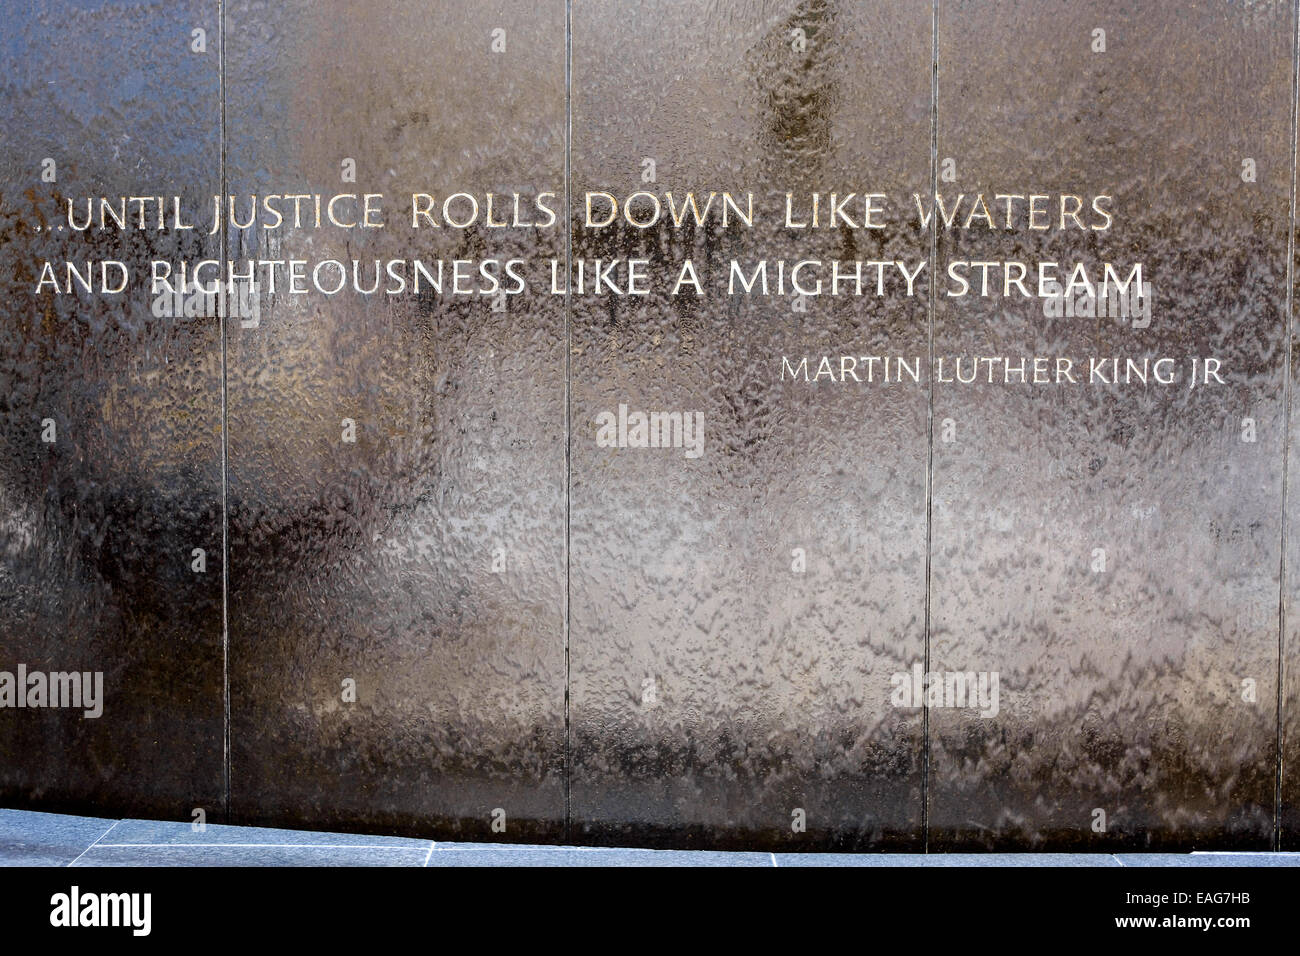 The Civil Rights Memorial Center in Montgomery Alabama - Stock Image